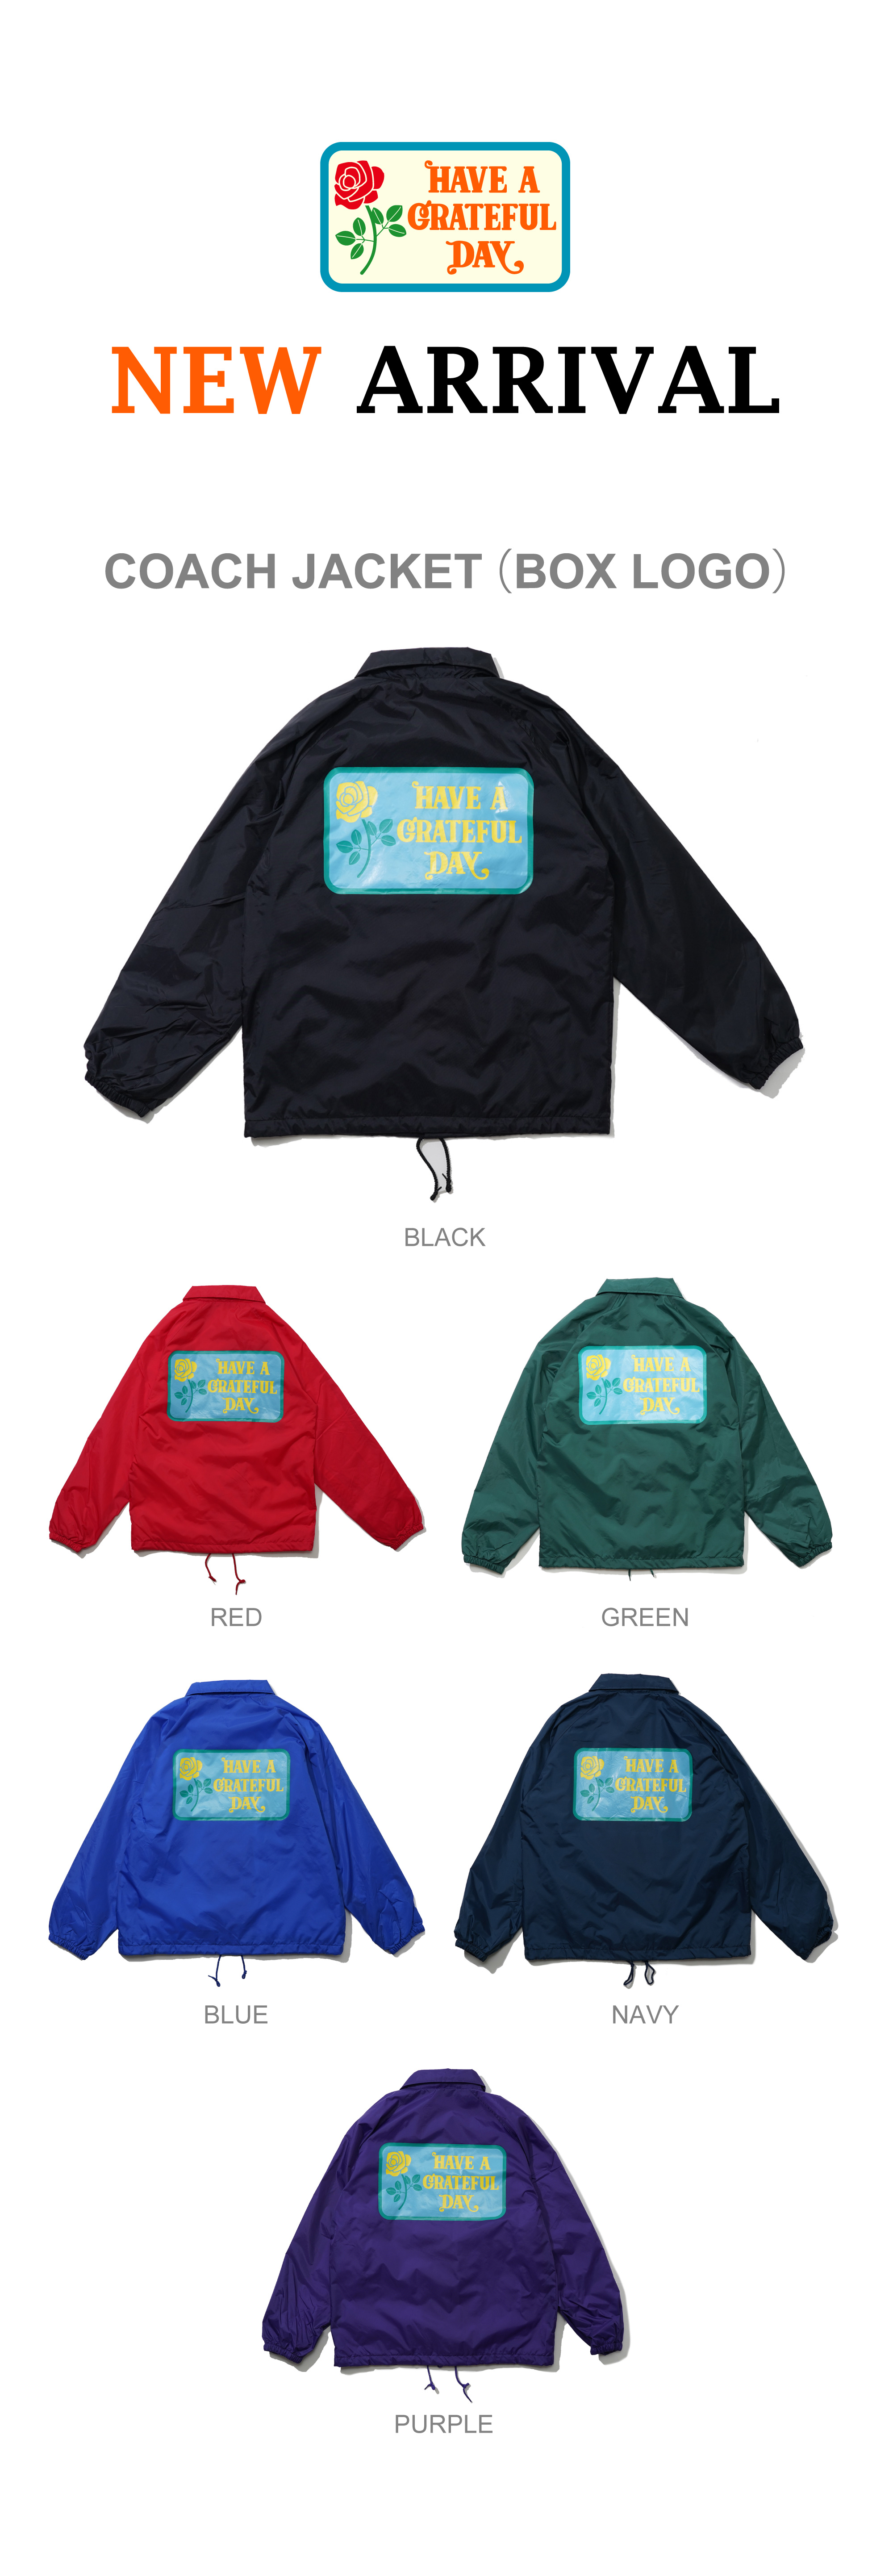 【HAVE A GRATEFUL DAY】COACH JACKET を入荷しました